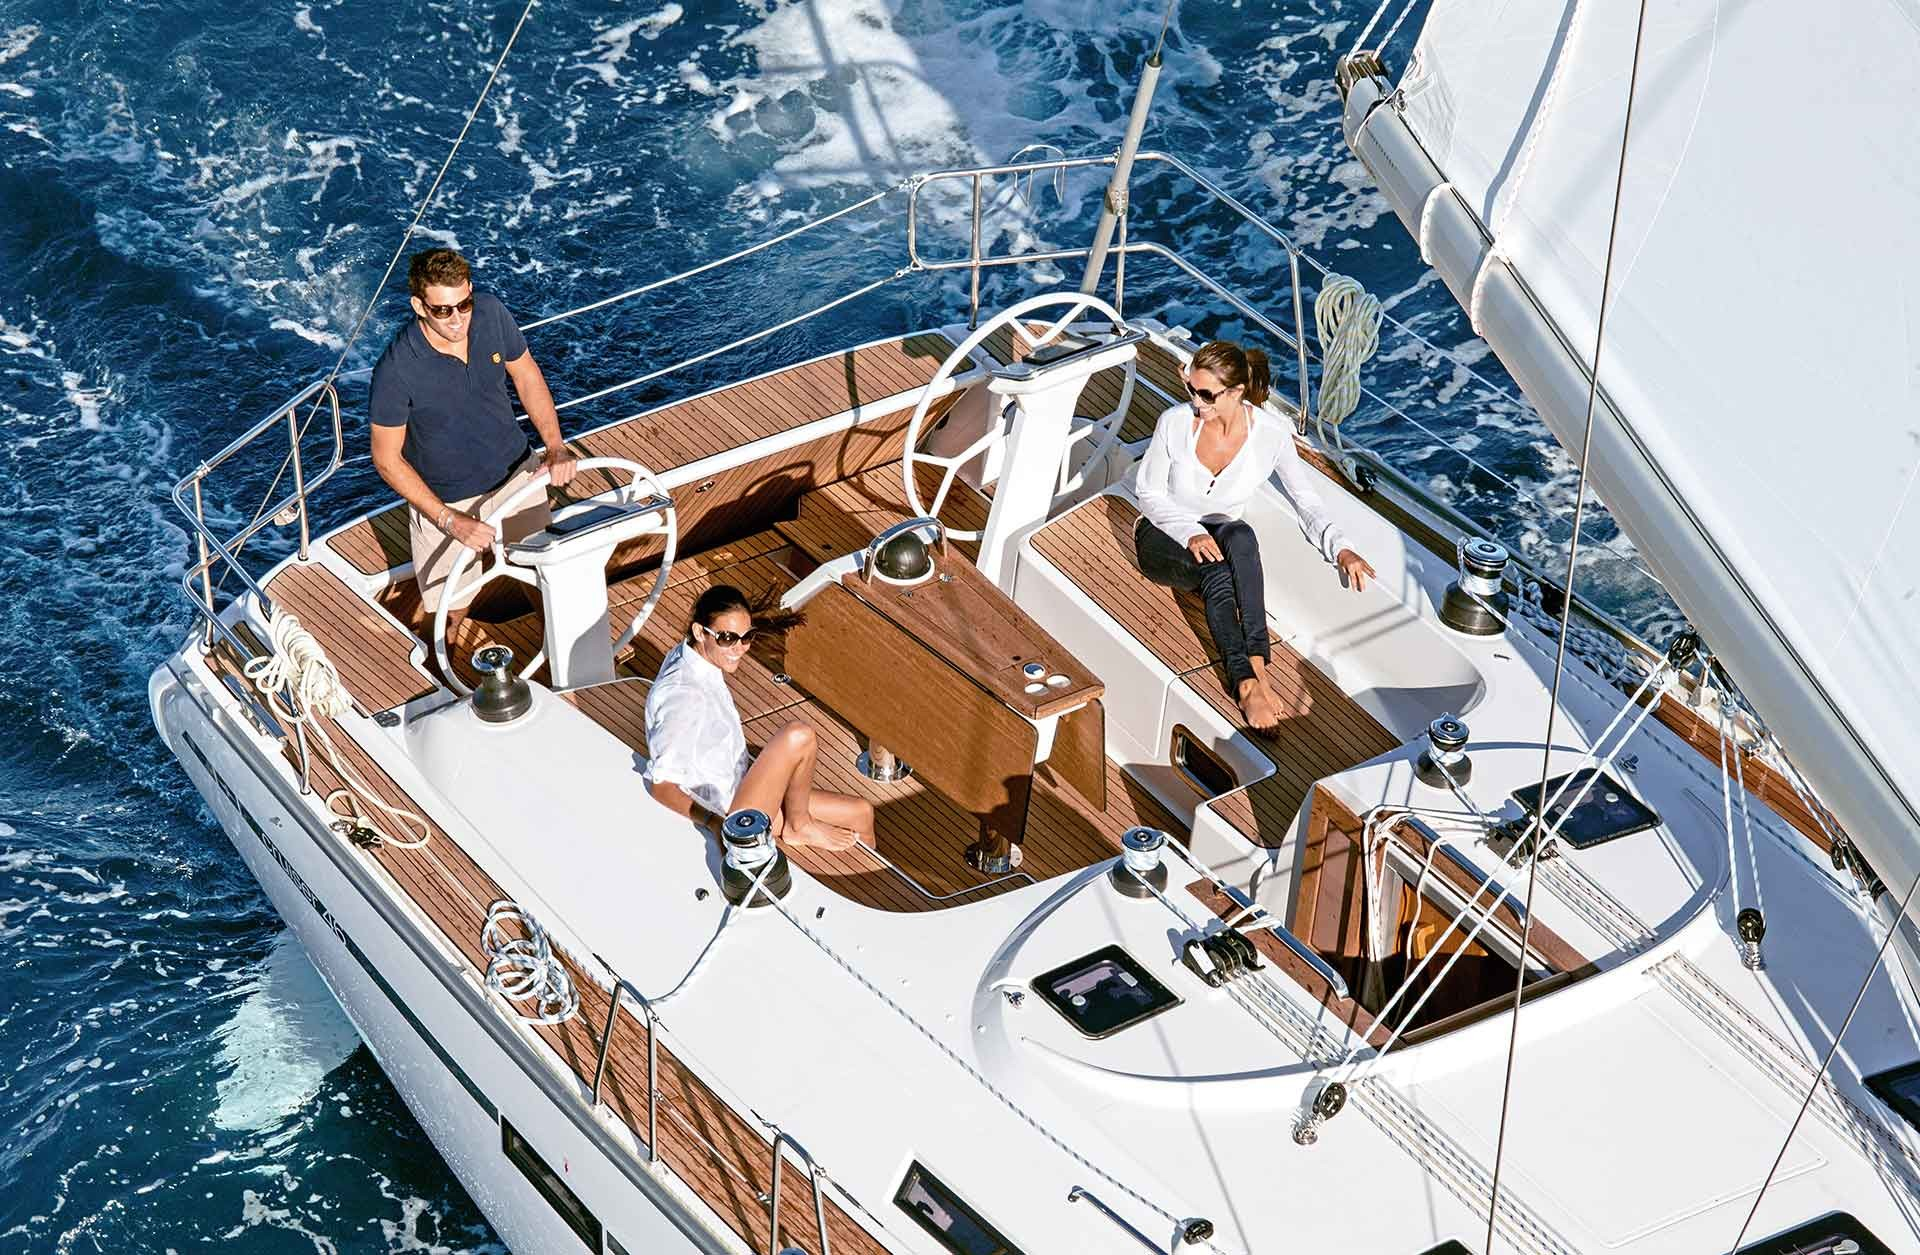 Sailing yachts offer a lot of space and the unique opportuinity to hoist the sails. Also the price for a sailing yacht is lower compared to a motor boat of the same size.